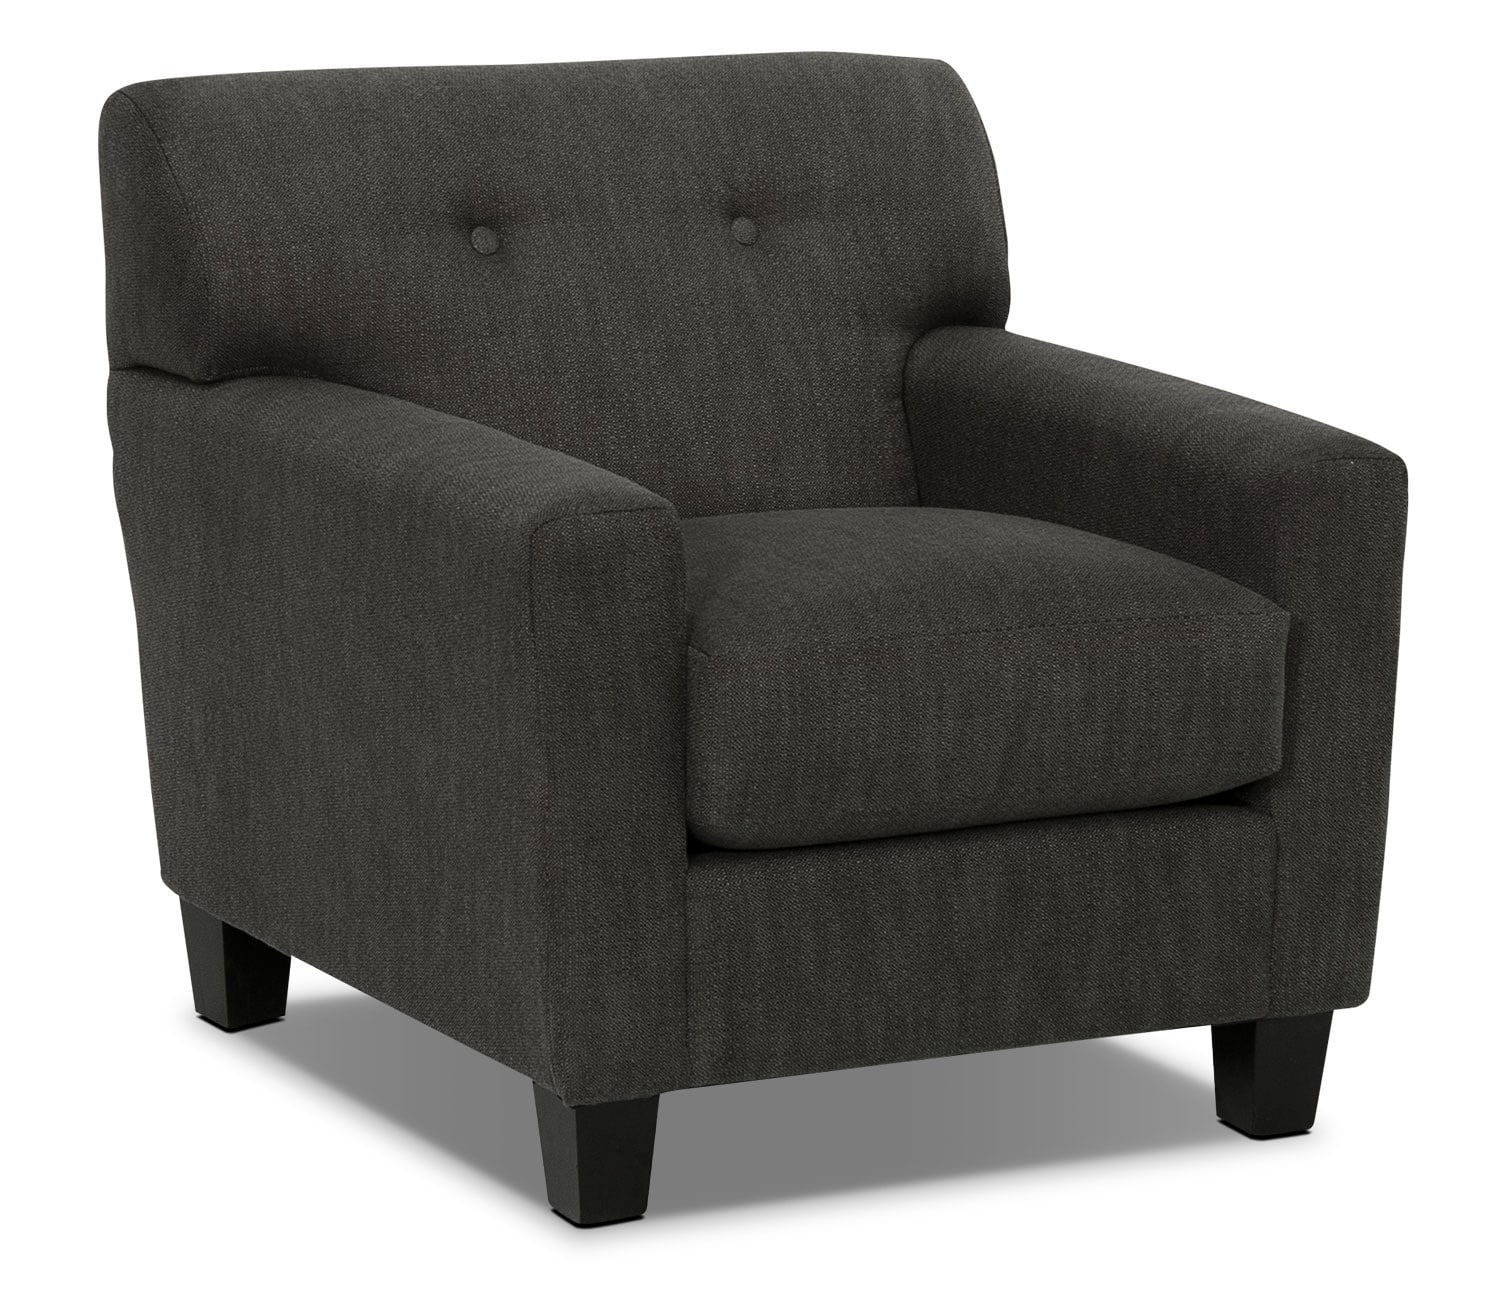 Living Room Furniture - Aubrey Linen-Look Fabric Chair - Charcoal